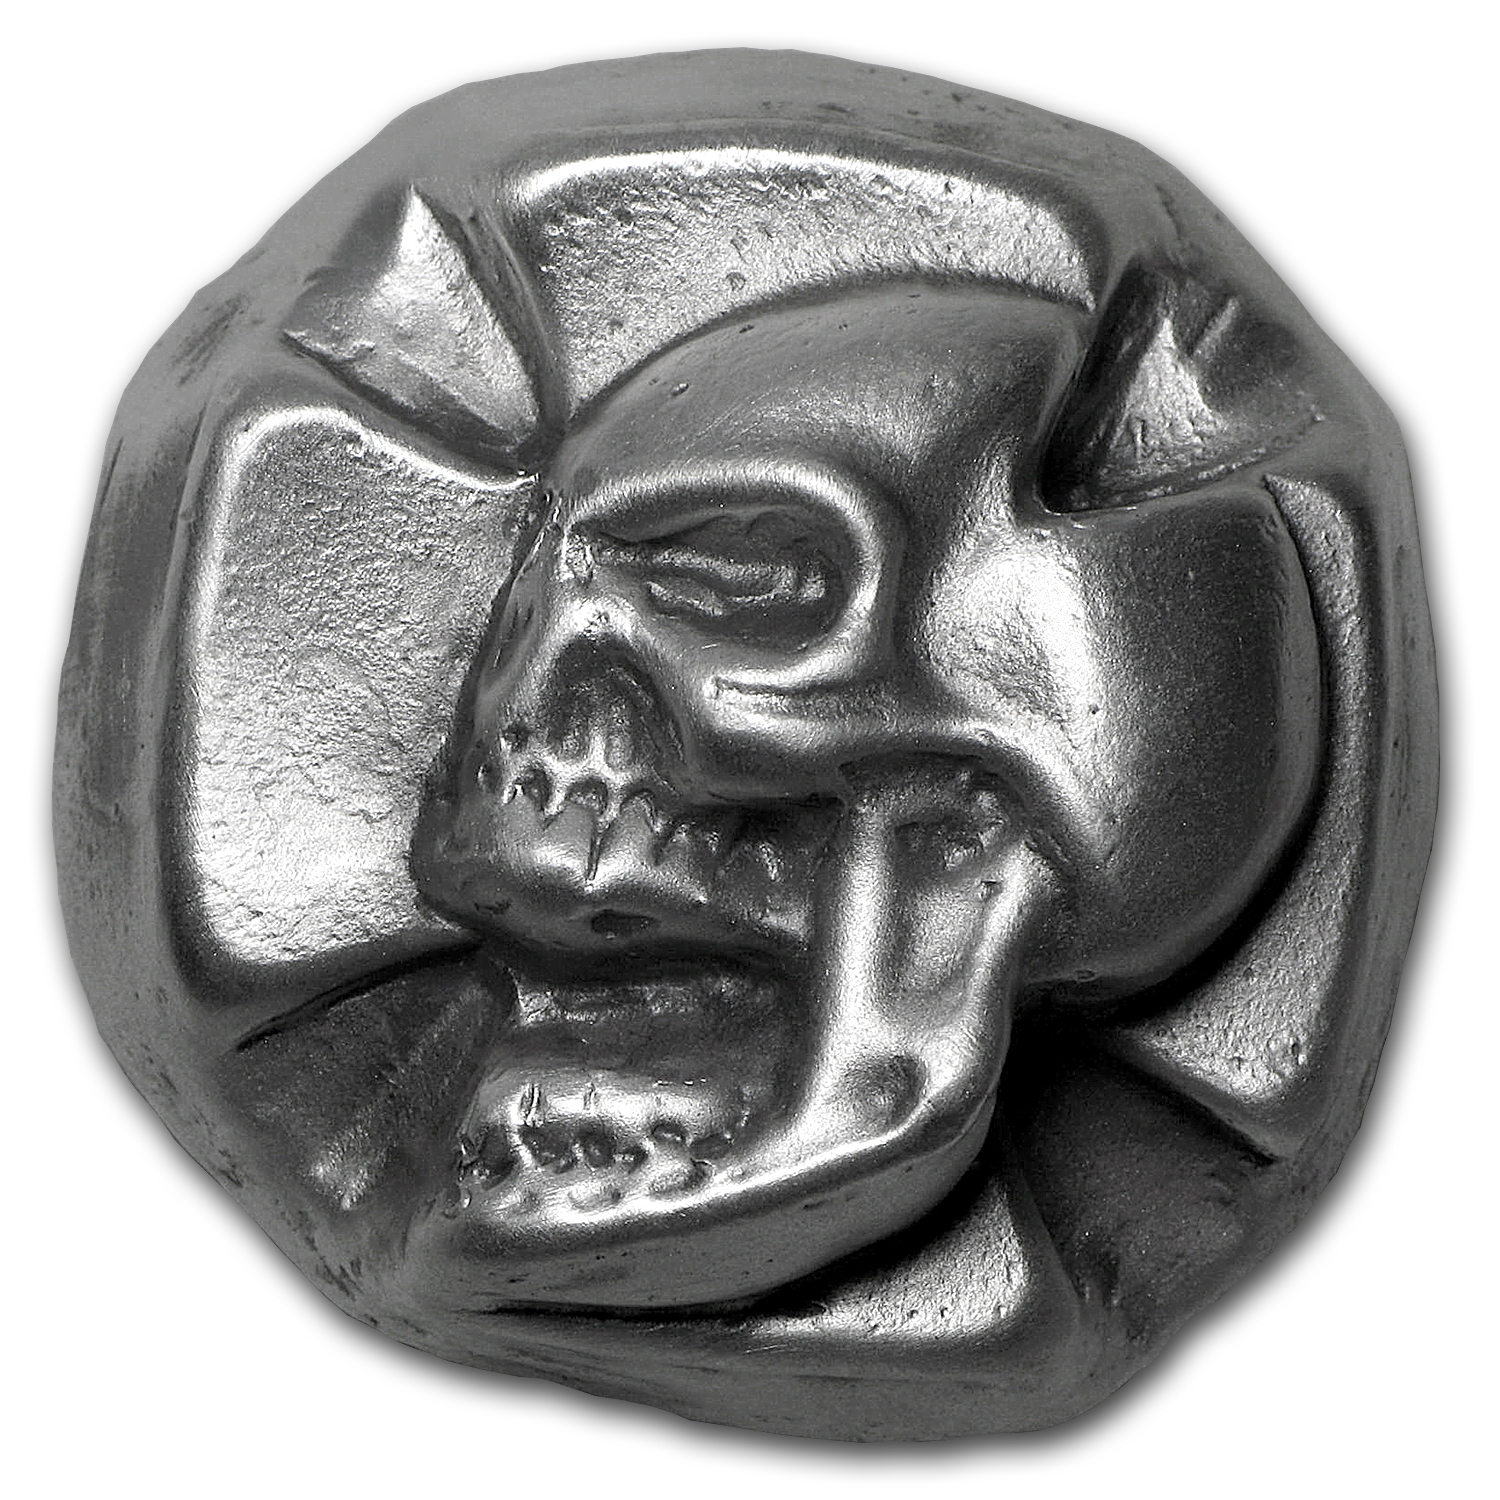 3 oz Silver Iron Cross Skull - Bison Bullion (1st 50 Issued)